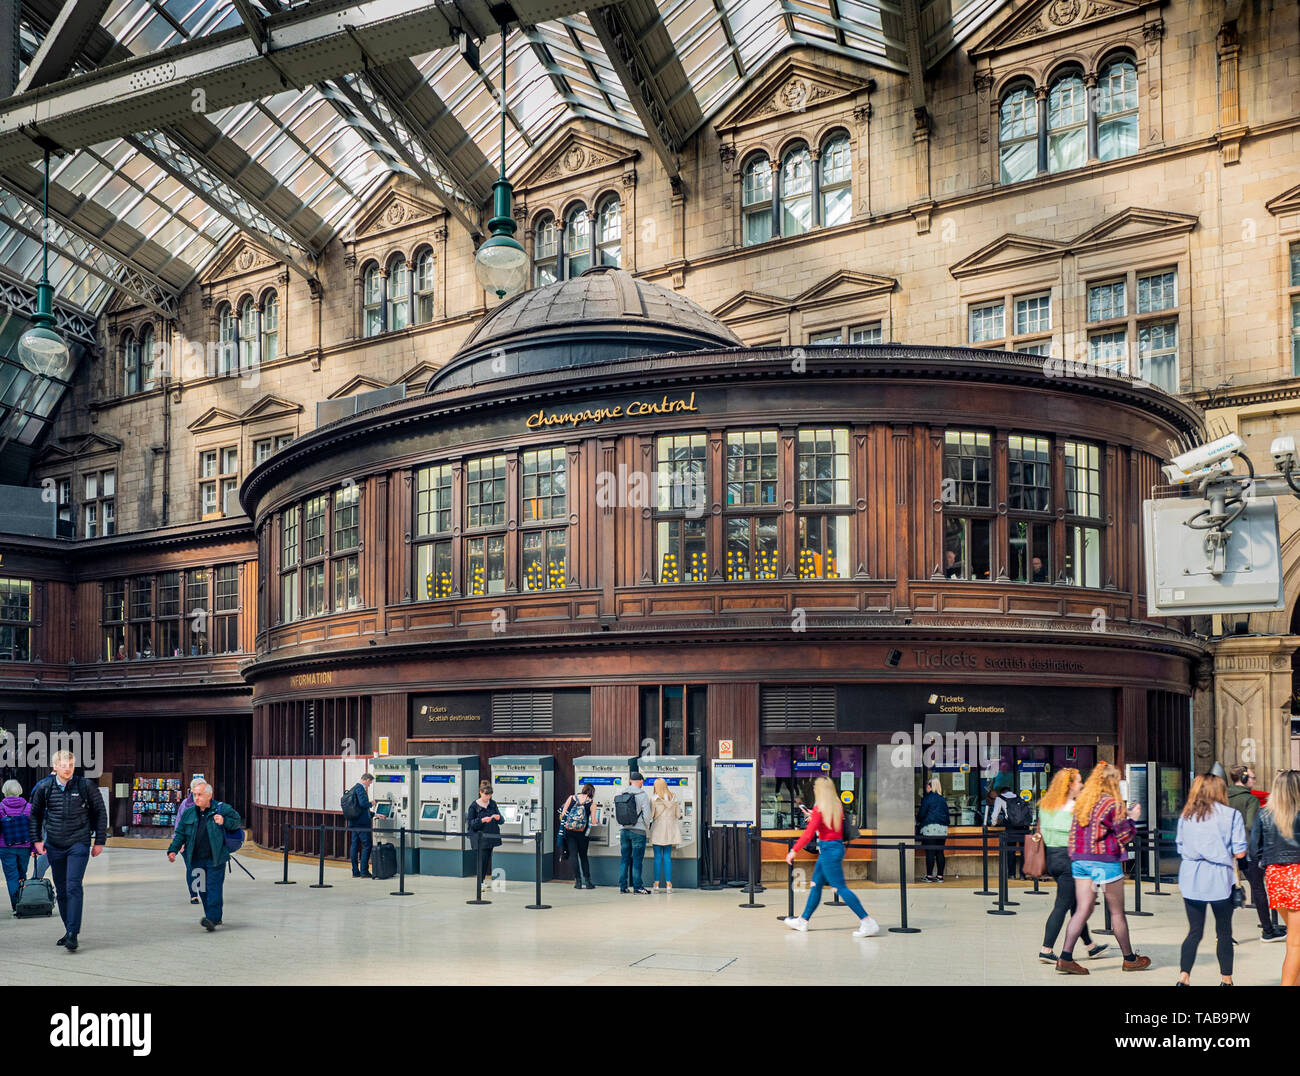 The Grand Central Hotel Glasgow Central Station, Scotland, United Kingdom - Stock Image